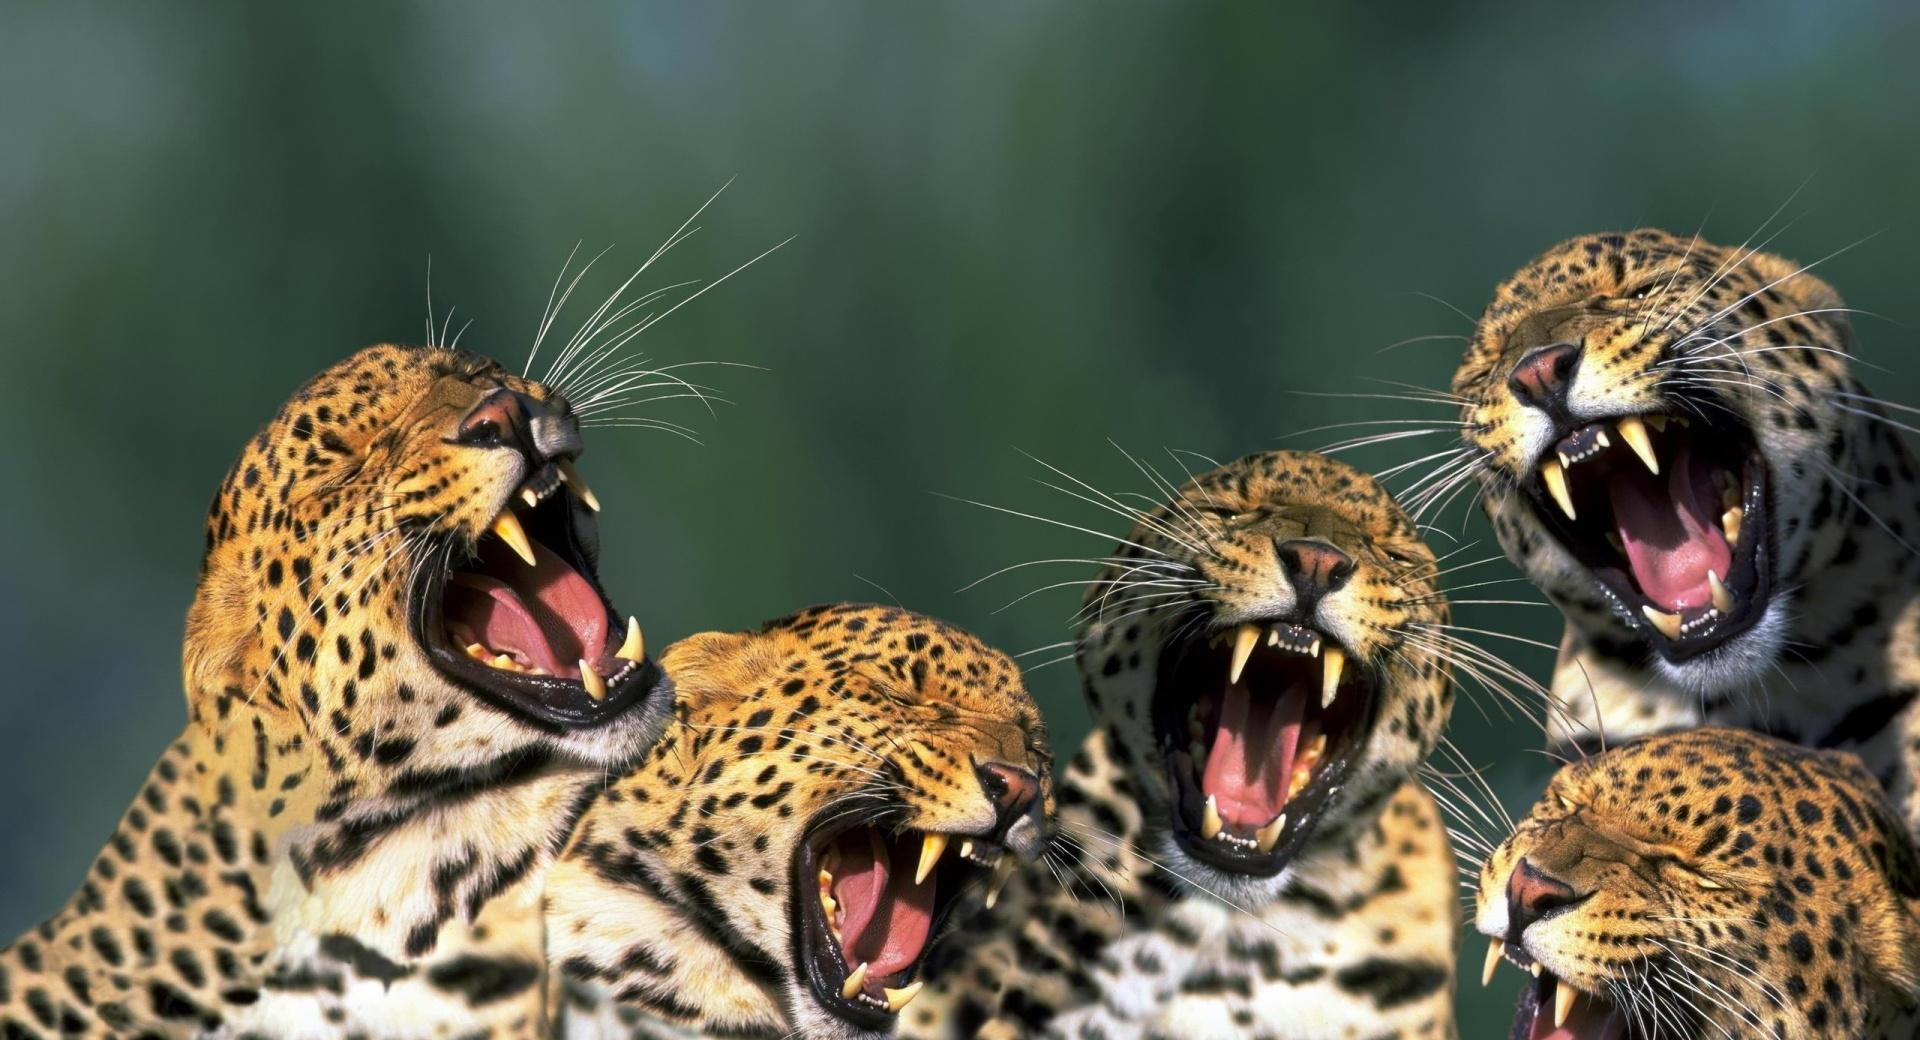 Funny Leopards wallpapers HD quality